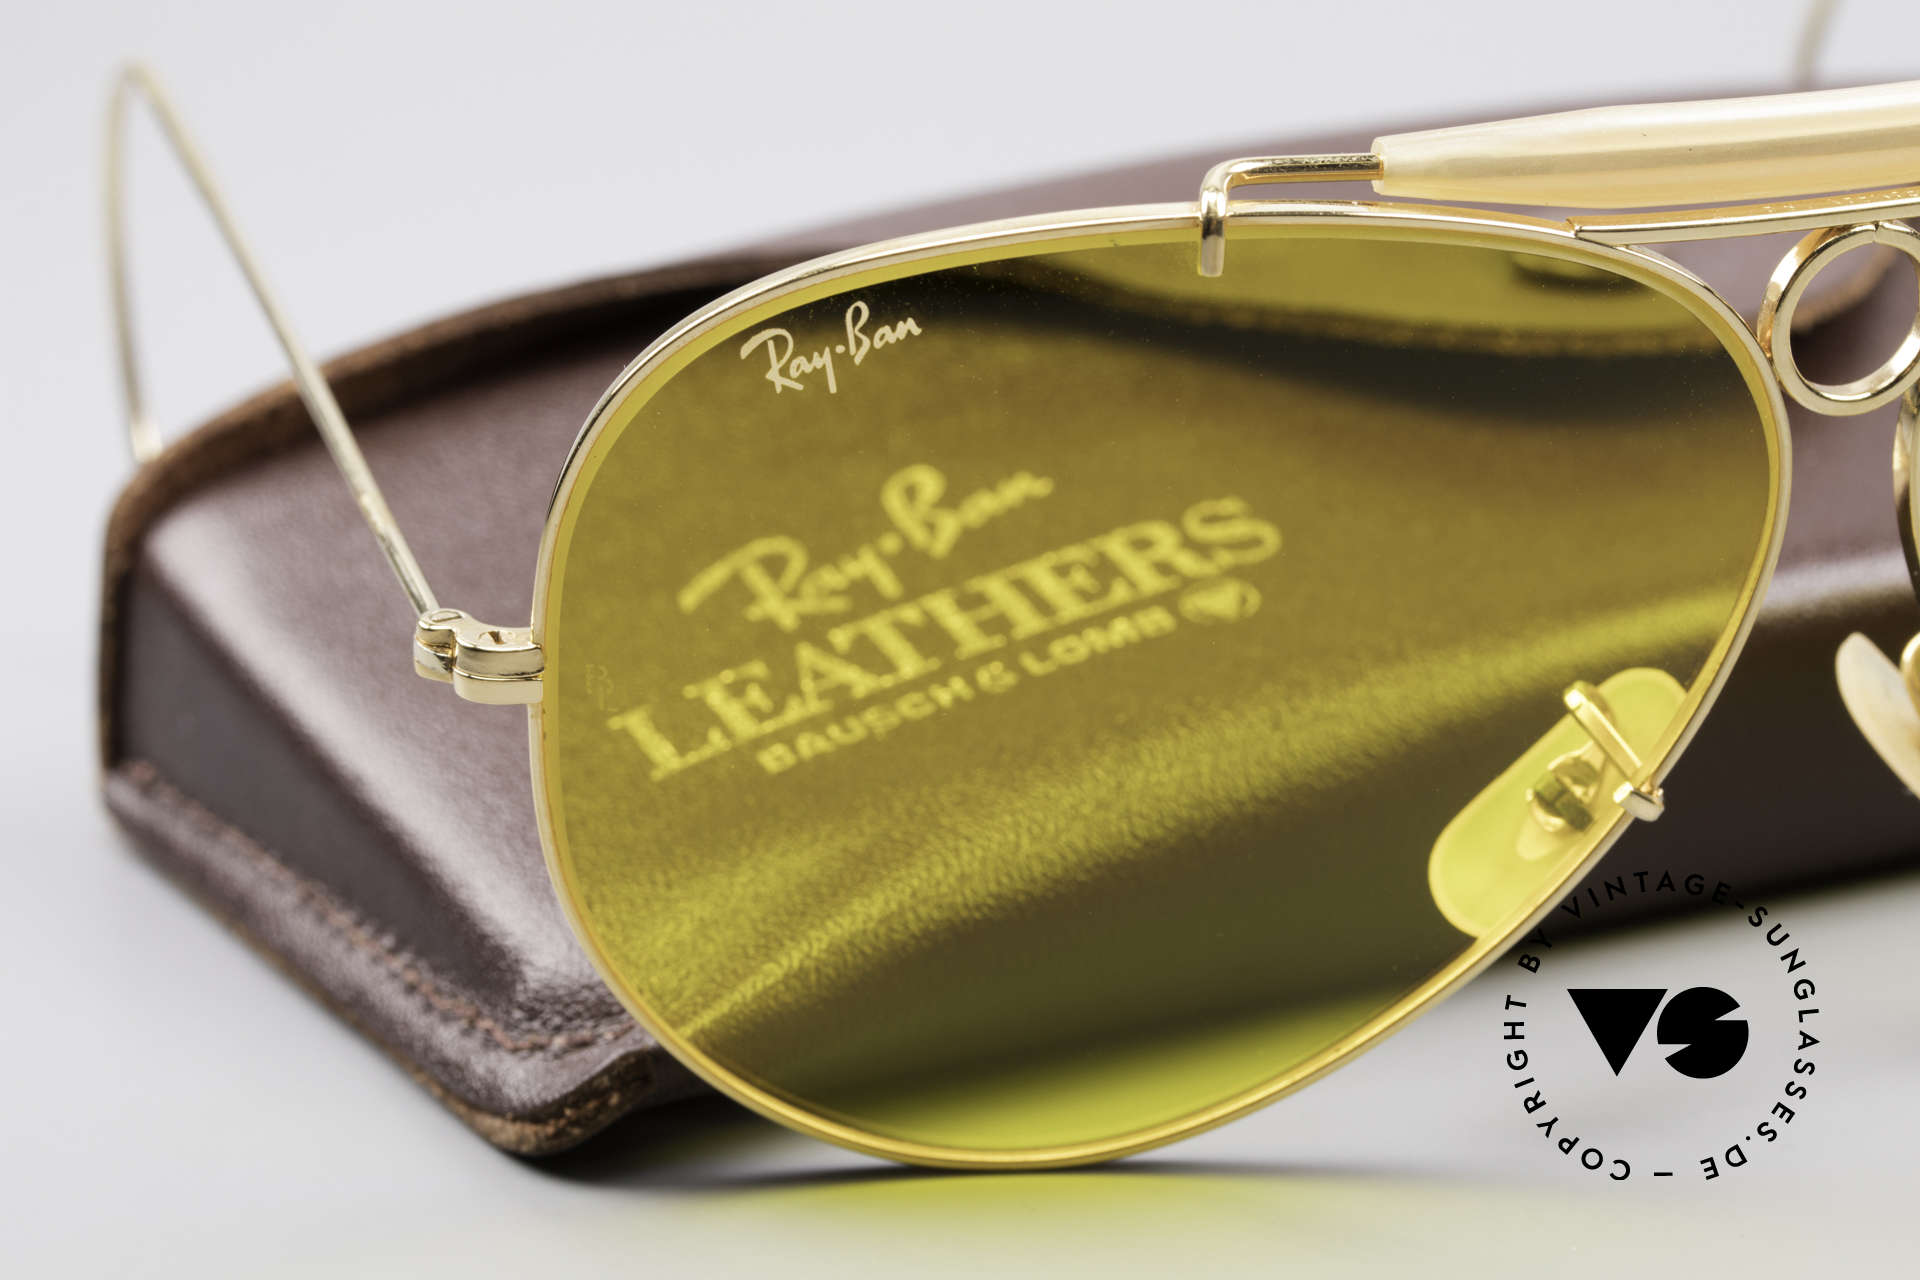 Ray Ban Shooter Sport B&L Kalichrome Lenses 62mm, NO RETRO sunglasses, but a genuine old USA-Original, Made for Men